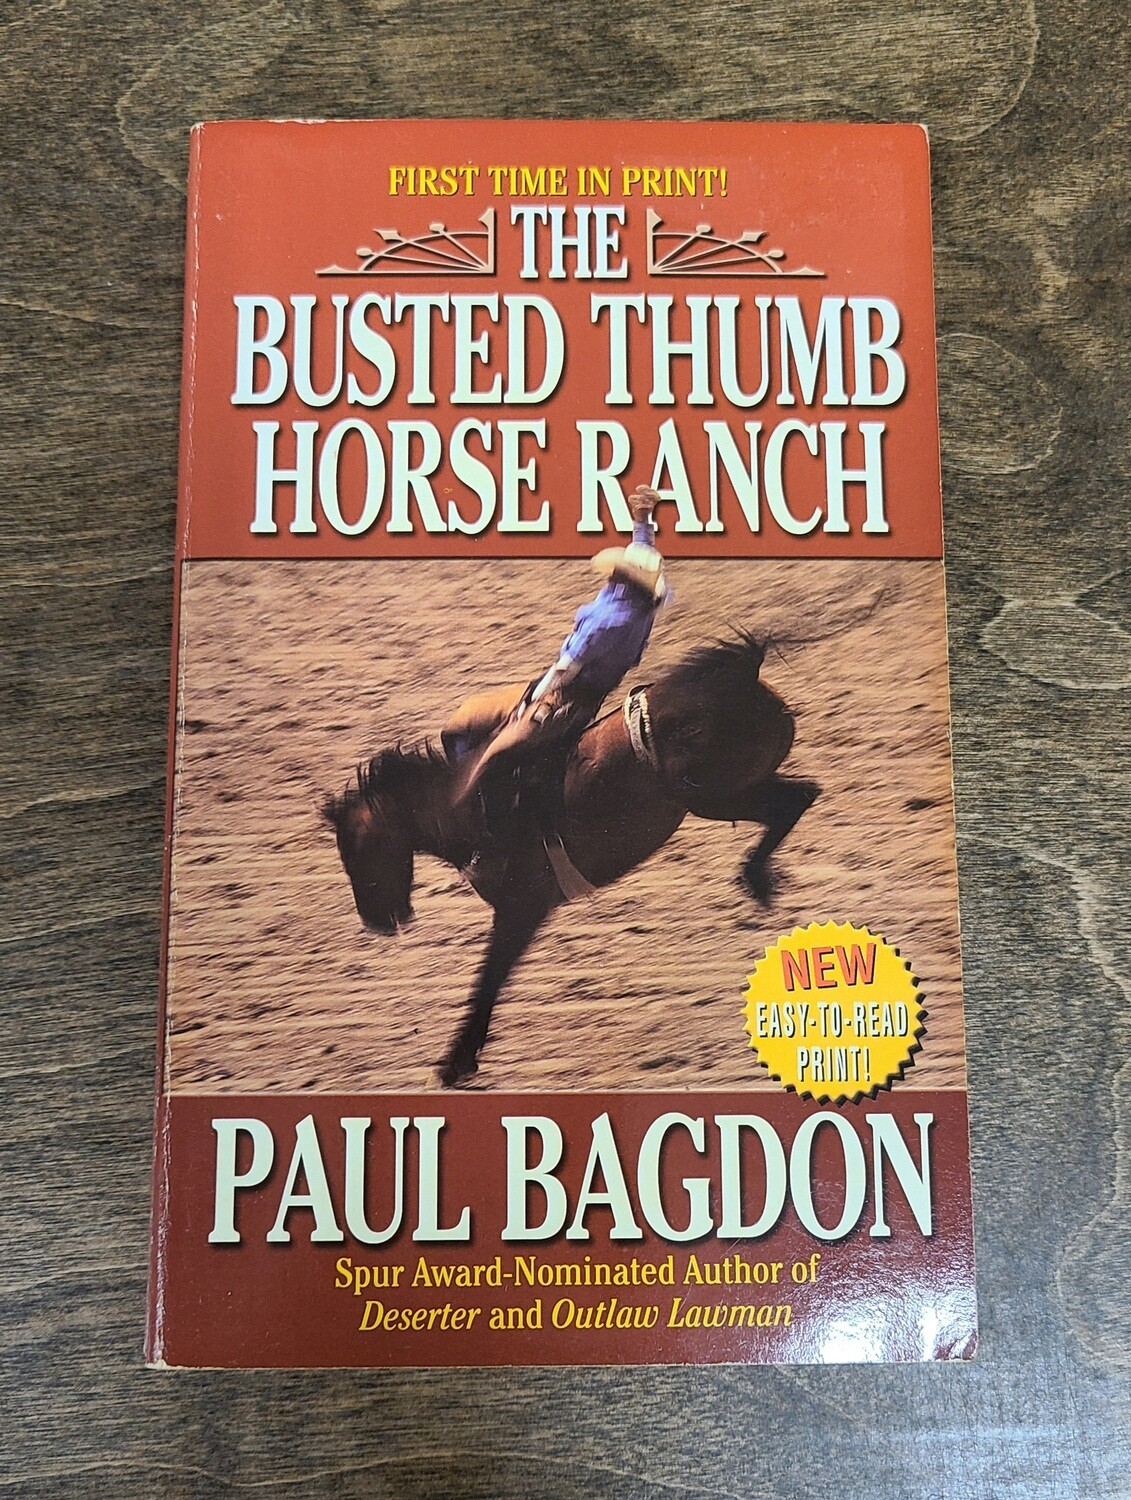 The Busted Thumb Horse Ranch by Paul Bagdon